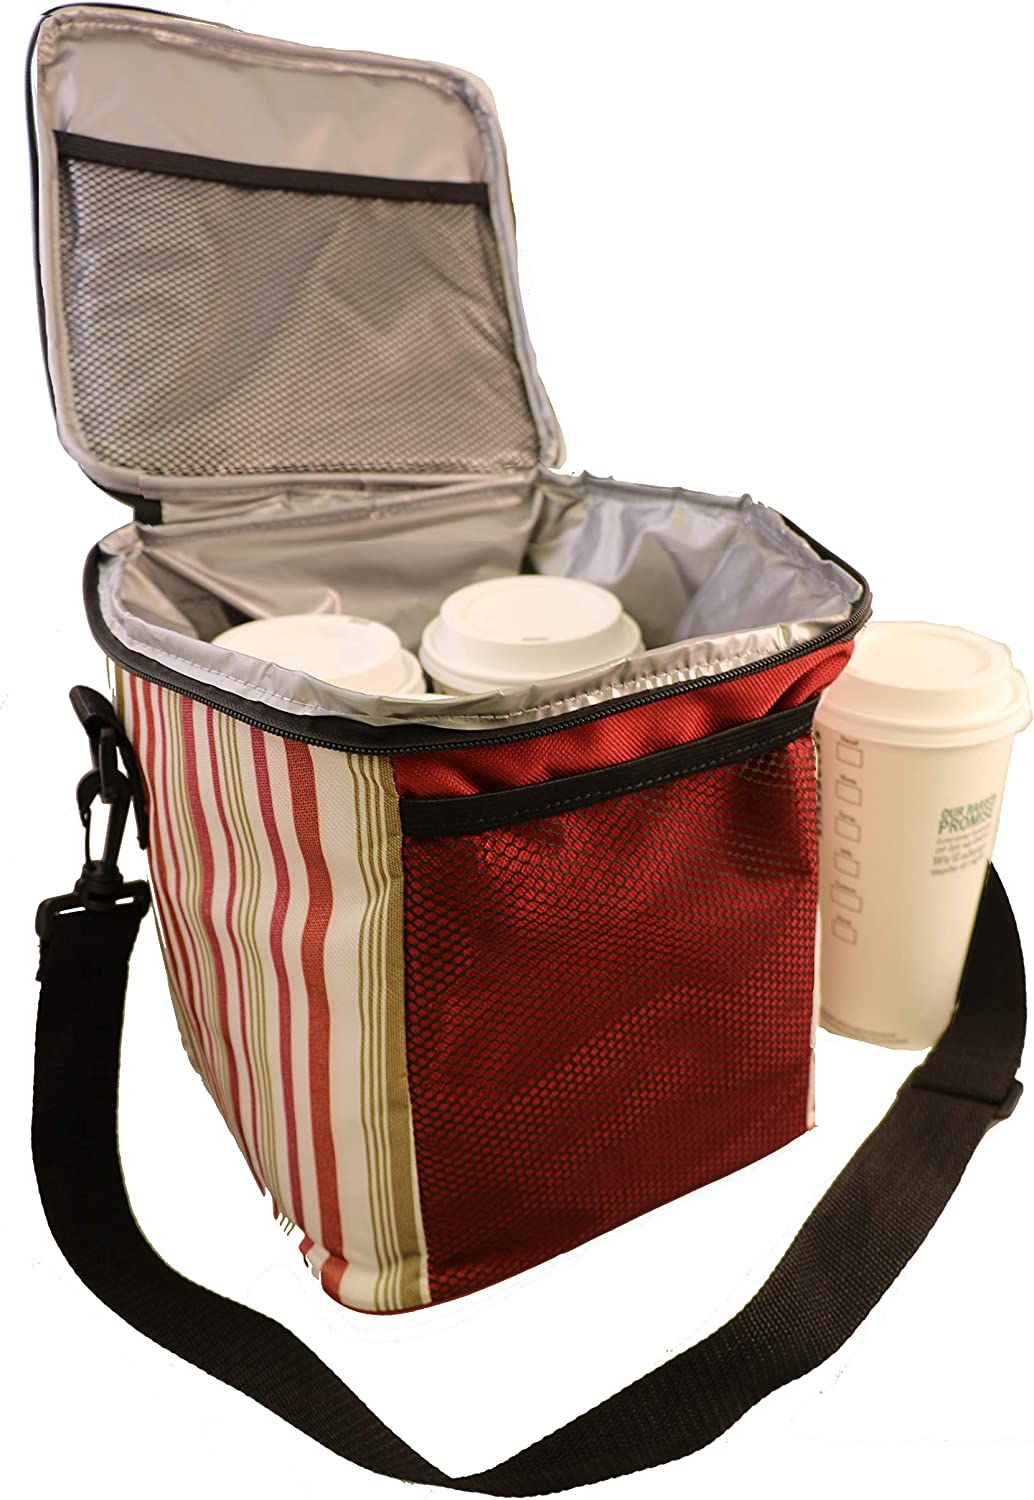 BevBag Insulated Beverage Carrier Extra Tall With Removable Shoulder Strap (Red, 4-Cup Carrier). BevTray sold separately. Great for Uber Eats, DoorDash, GrubHub